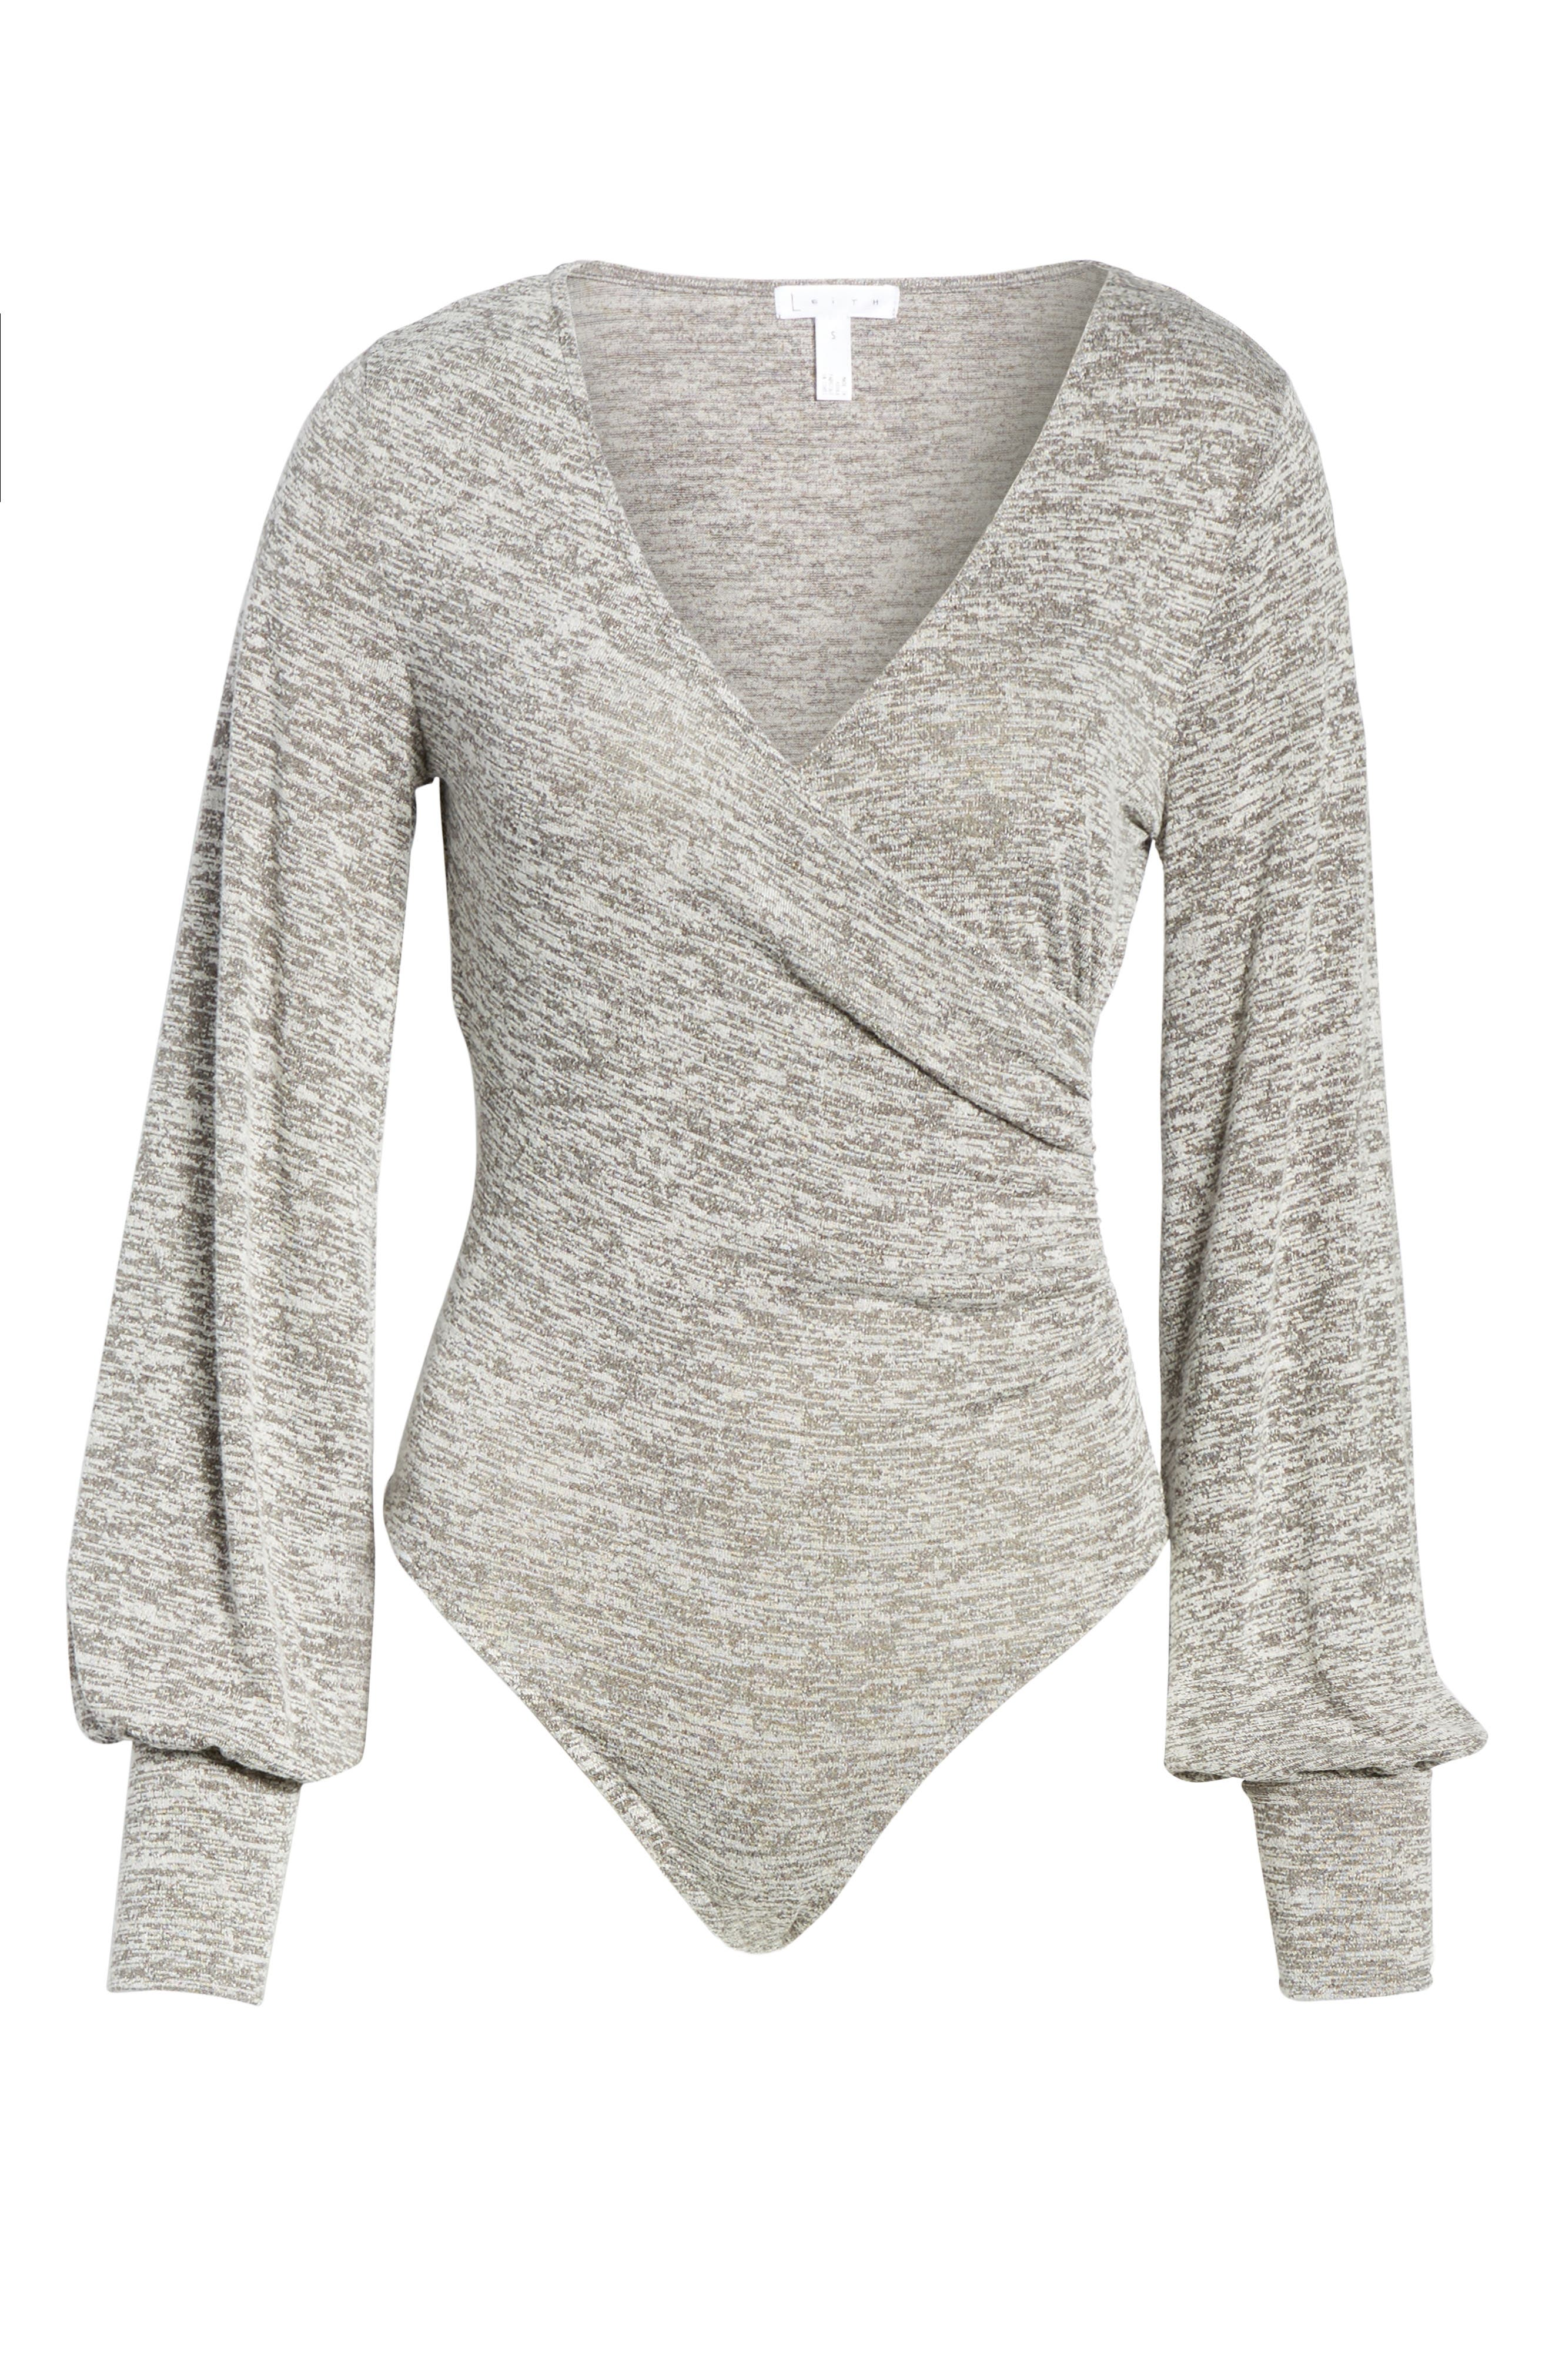 Ruched Bodysuit,                             Alternate thumbnail 5, color,                             Grey Cloudy Heather